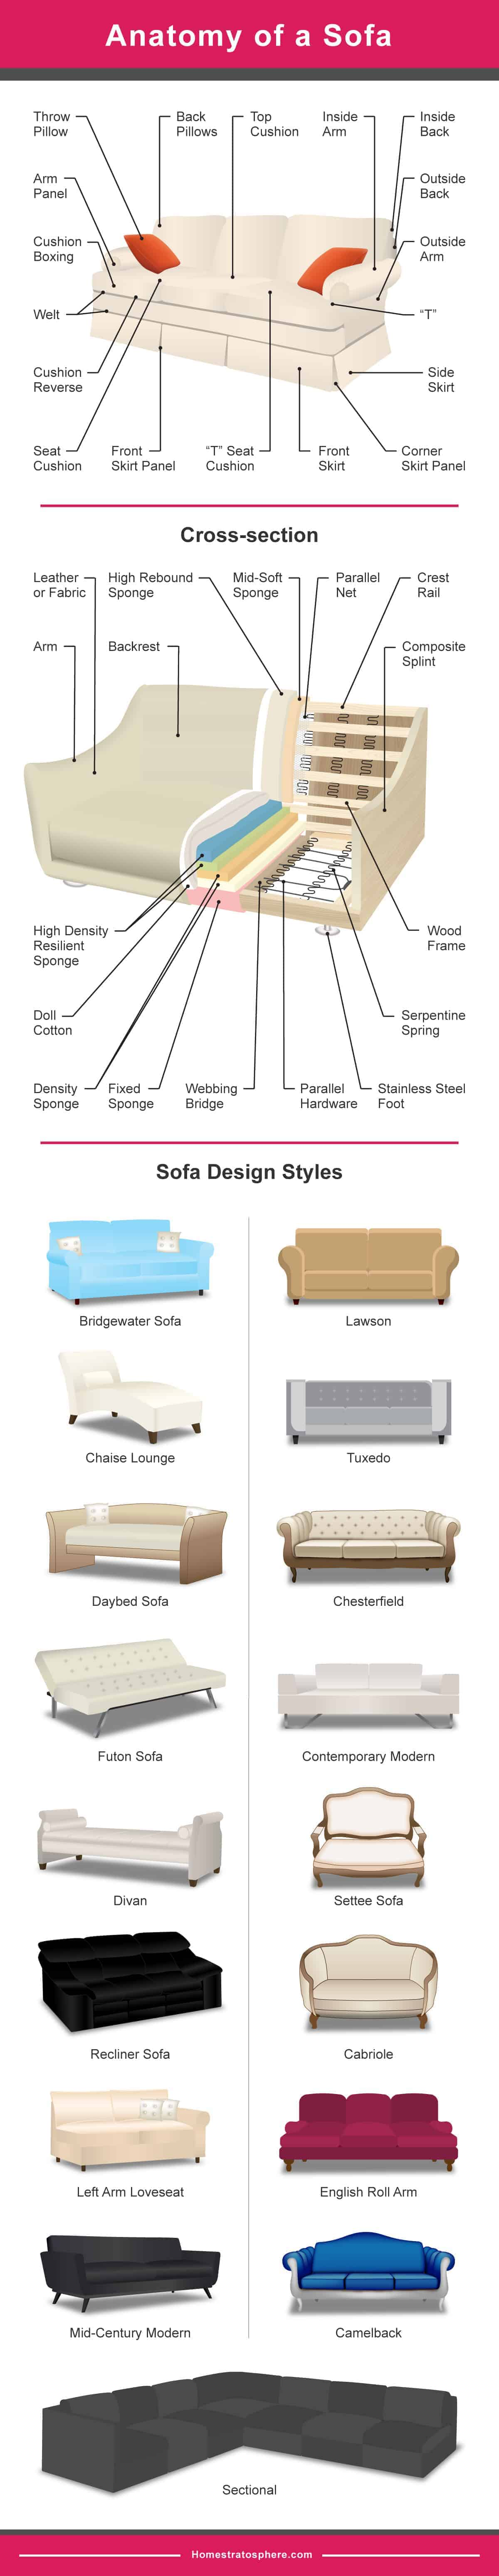 Diagram Setting Out The Diffe Types Of Sofas And Anatomy A Sofa